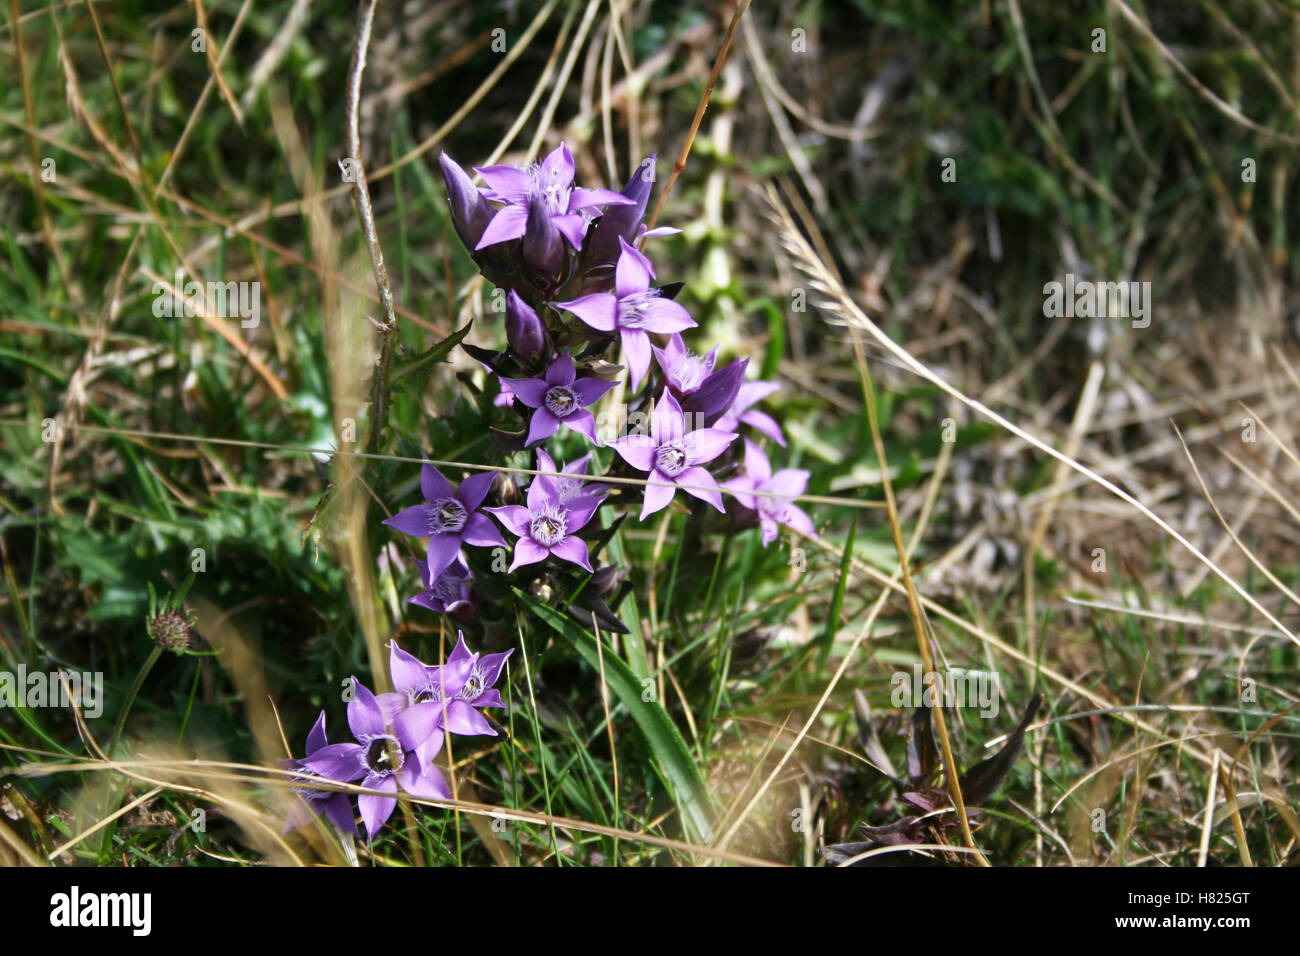 Gentians (Gentiana anisodonta) at an alpine meadow in the Dolomites (South Tyrol, Italy) - Stock Image